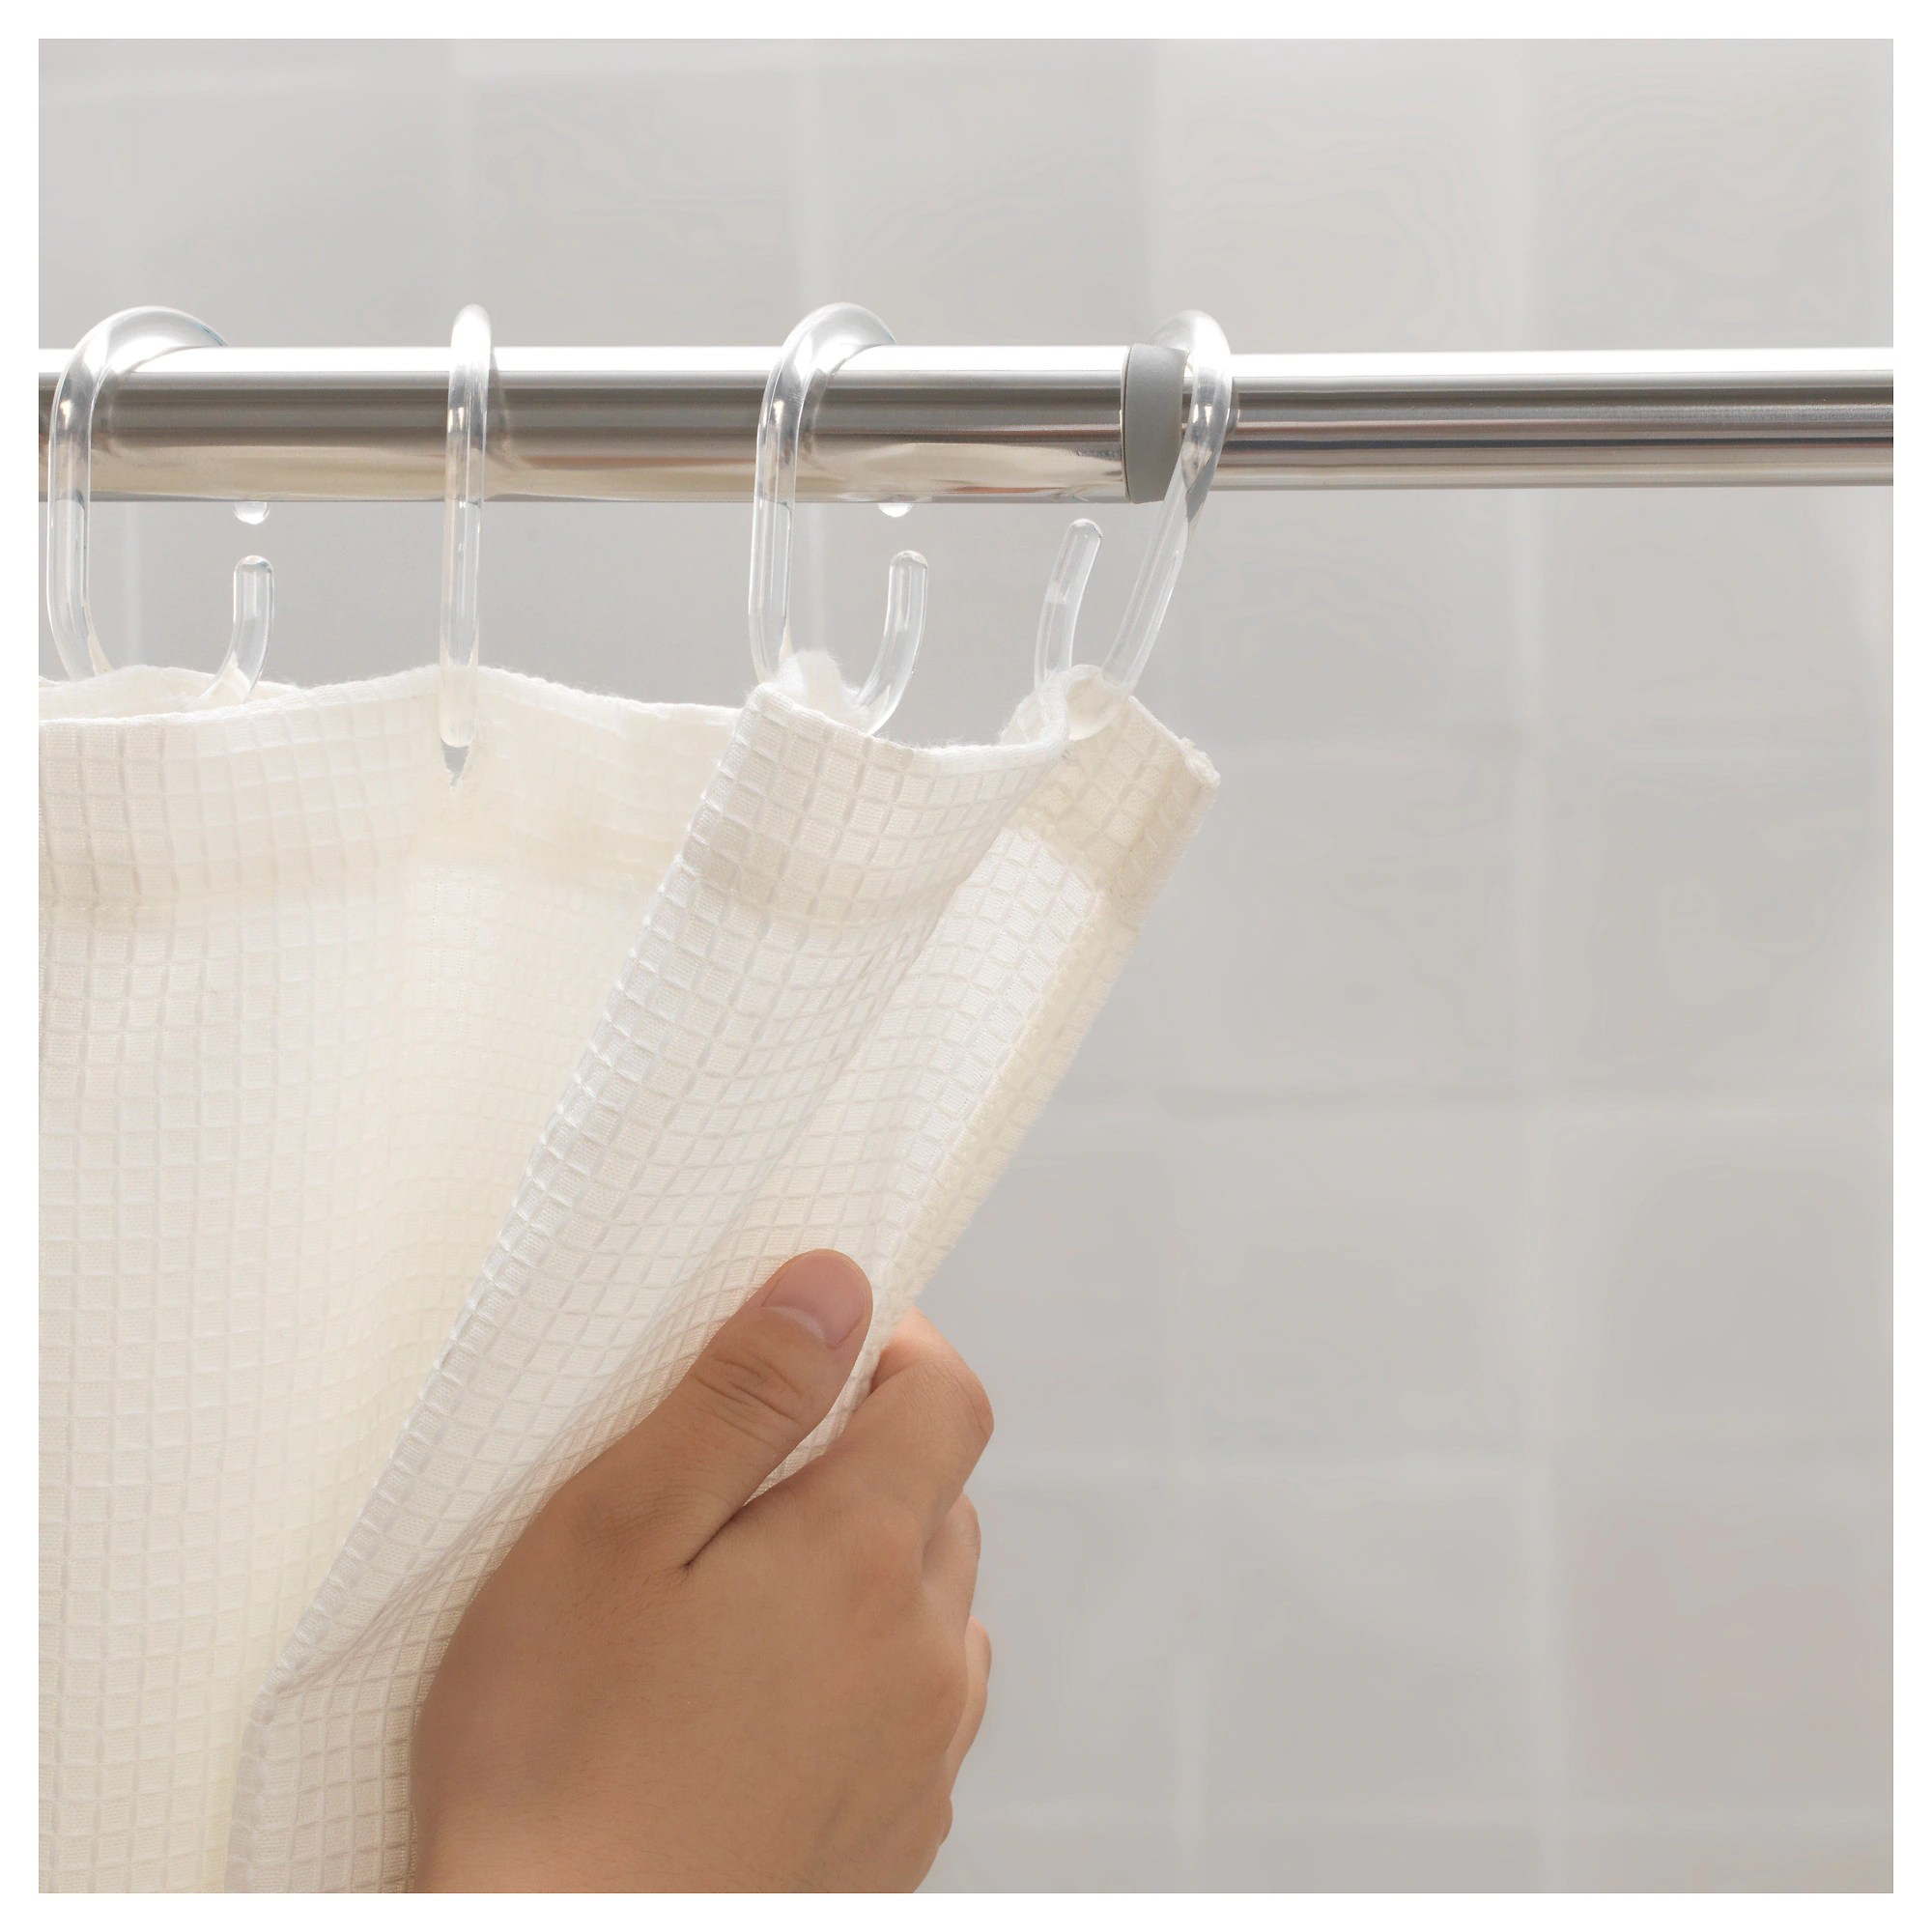 82 Shower Curtain Hornen Shower Curtain Rod